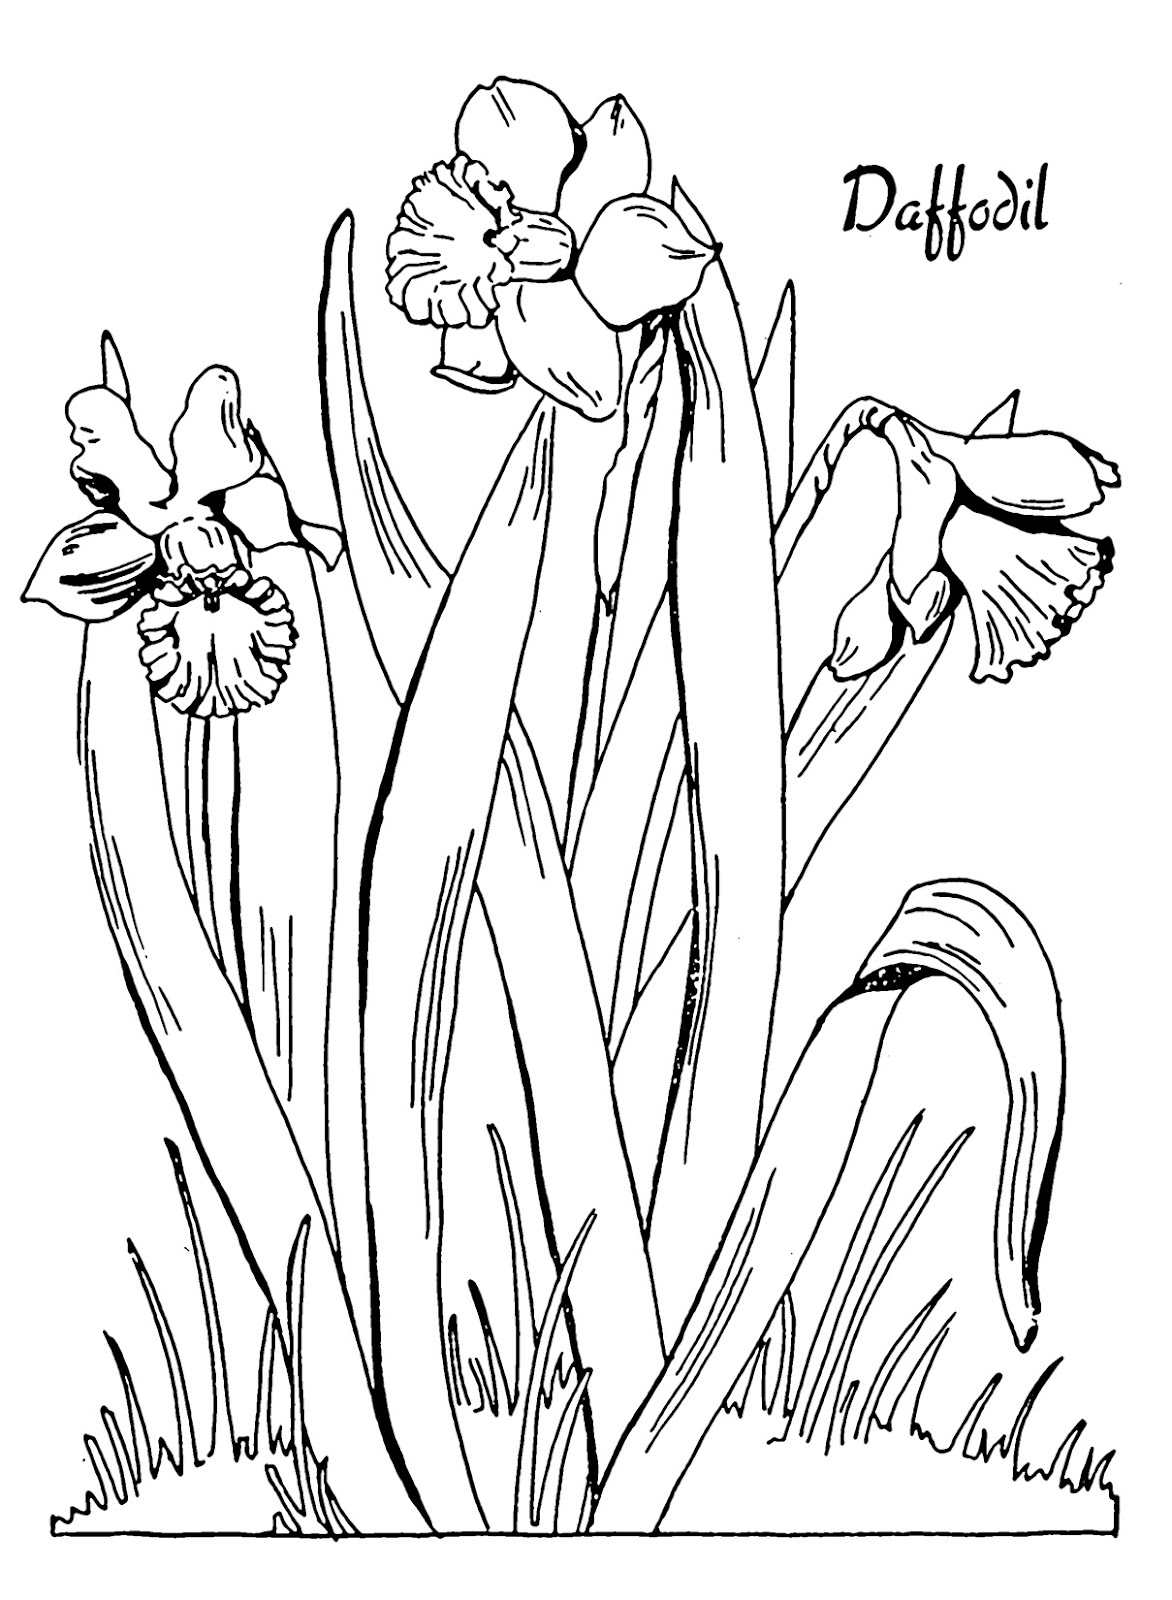 Kids Printable Daffodil Coloring Page the Graphics Fairy Download Of New Daffodil Flower Coloring Pages Collection Printable